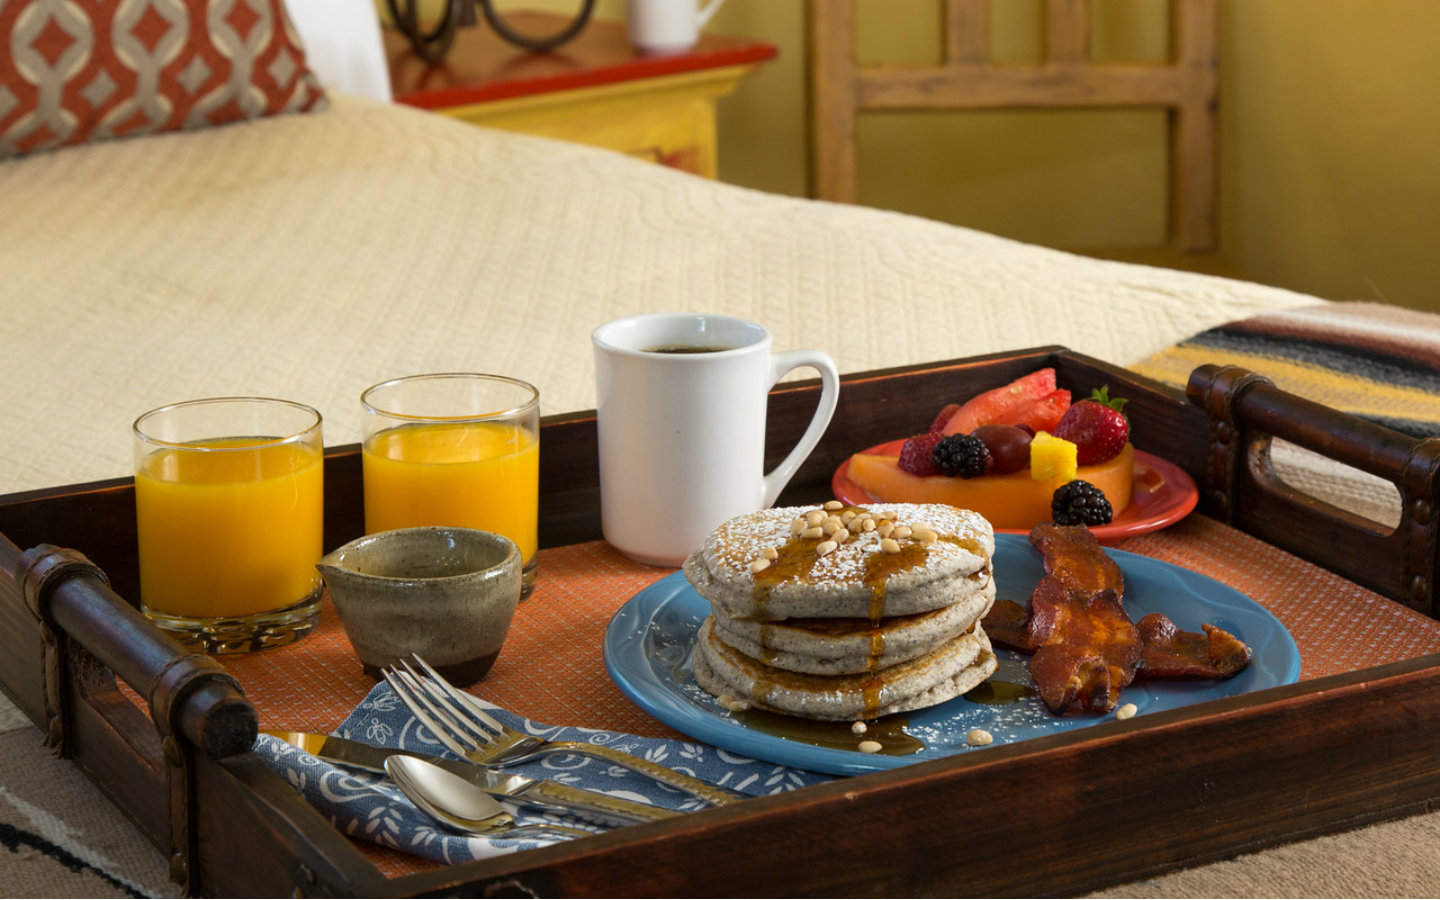 Breakfast is served in a guest room at our Santa Fe B&B